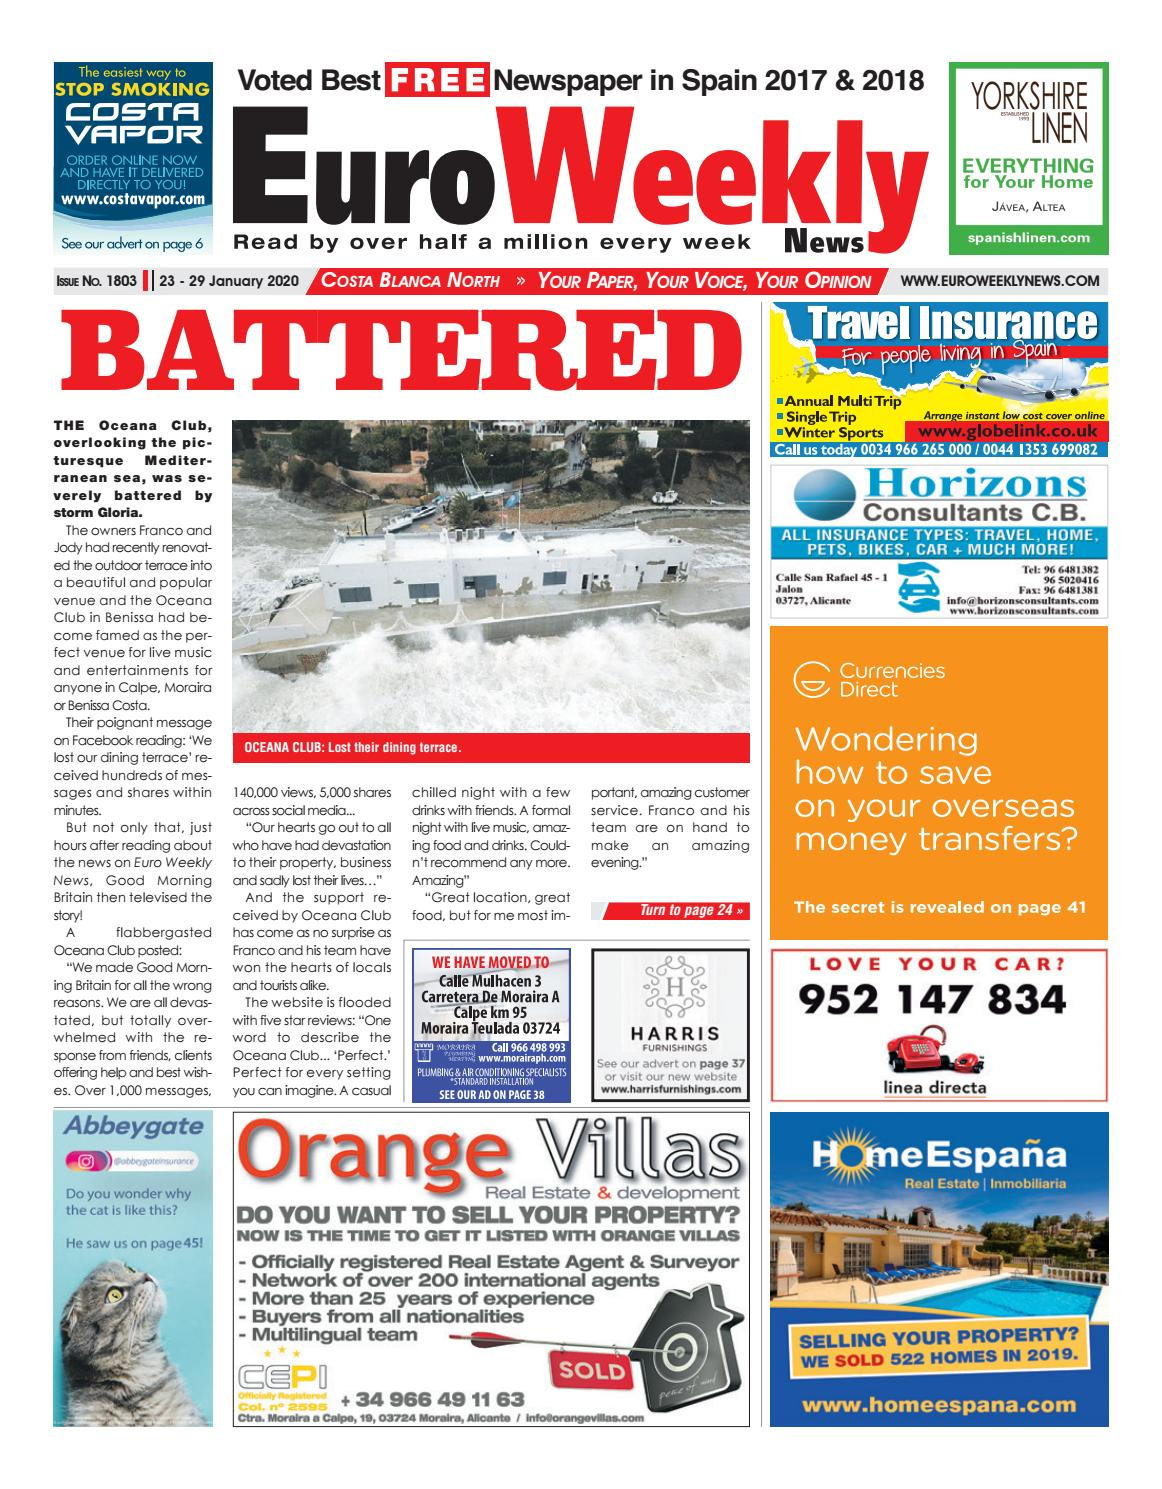 Euro Weekly News Costa Blanca North 23 29 January 2020